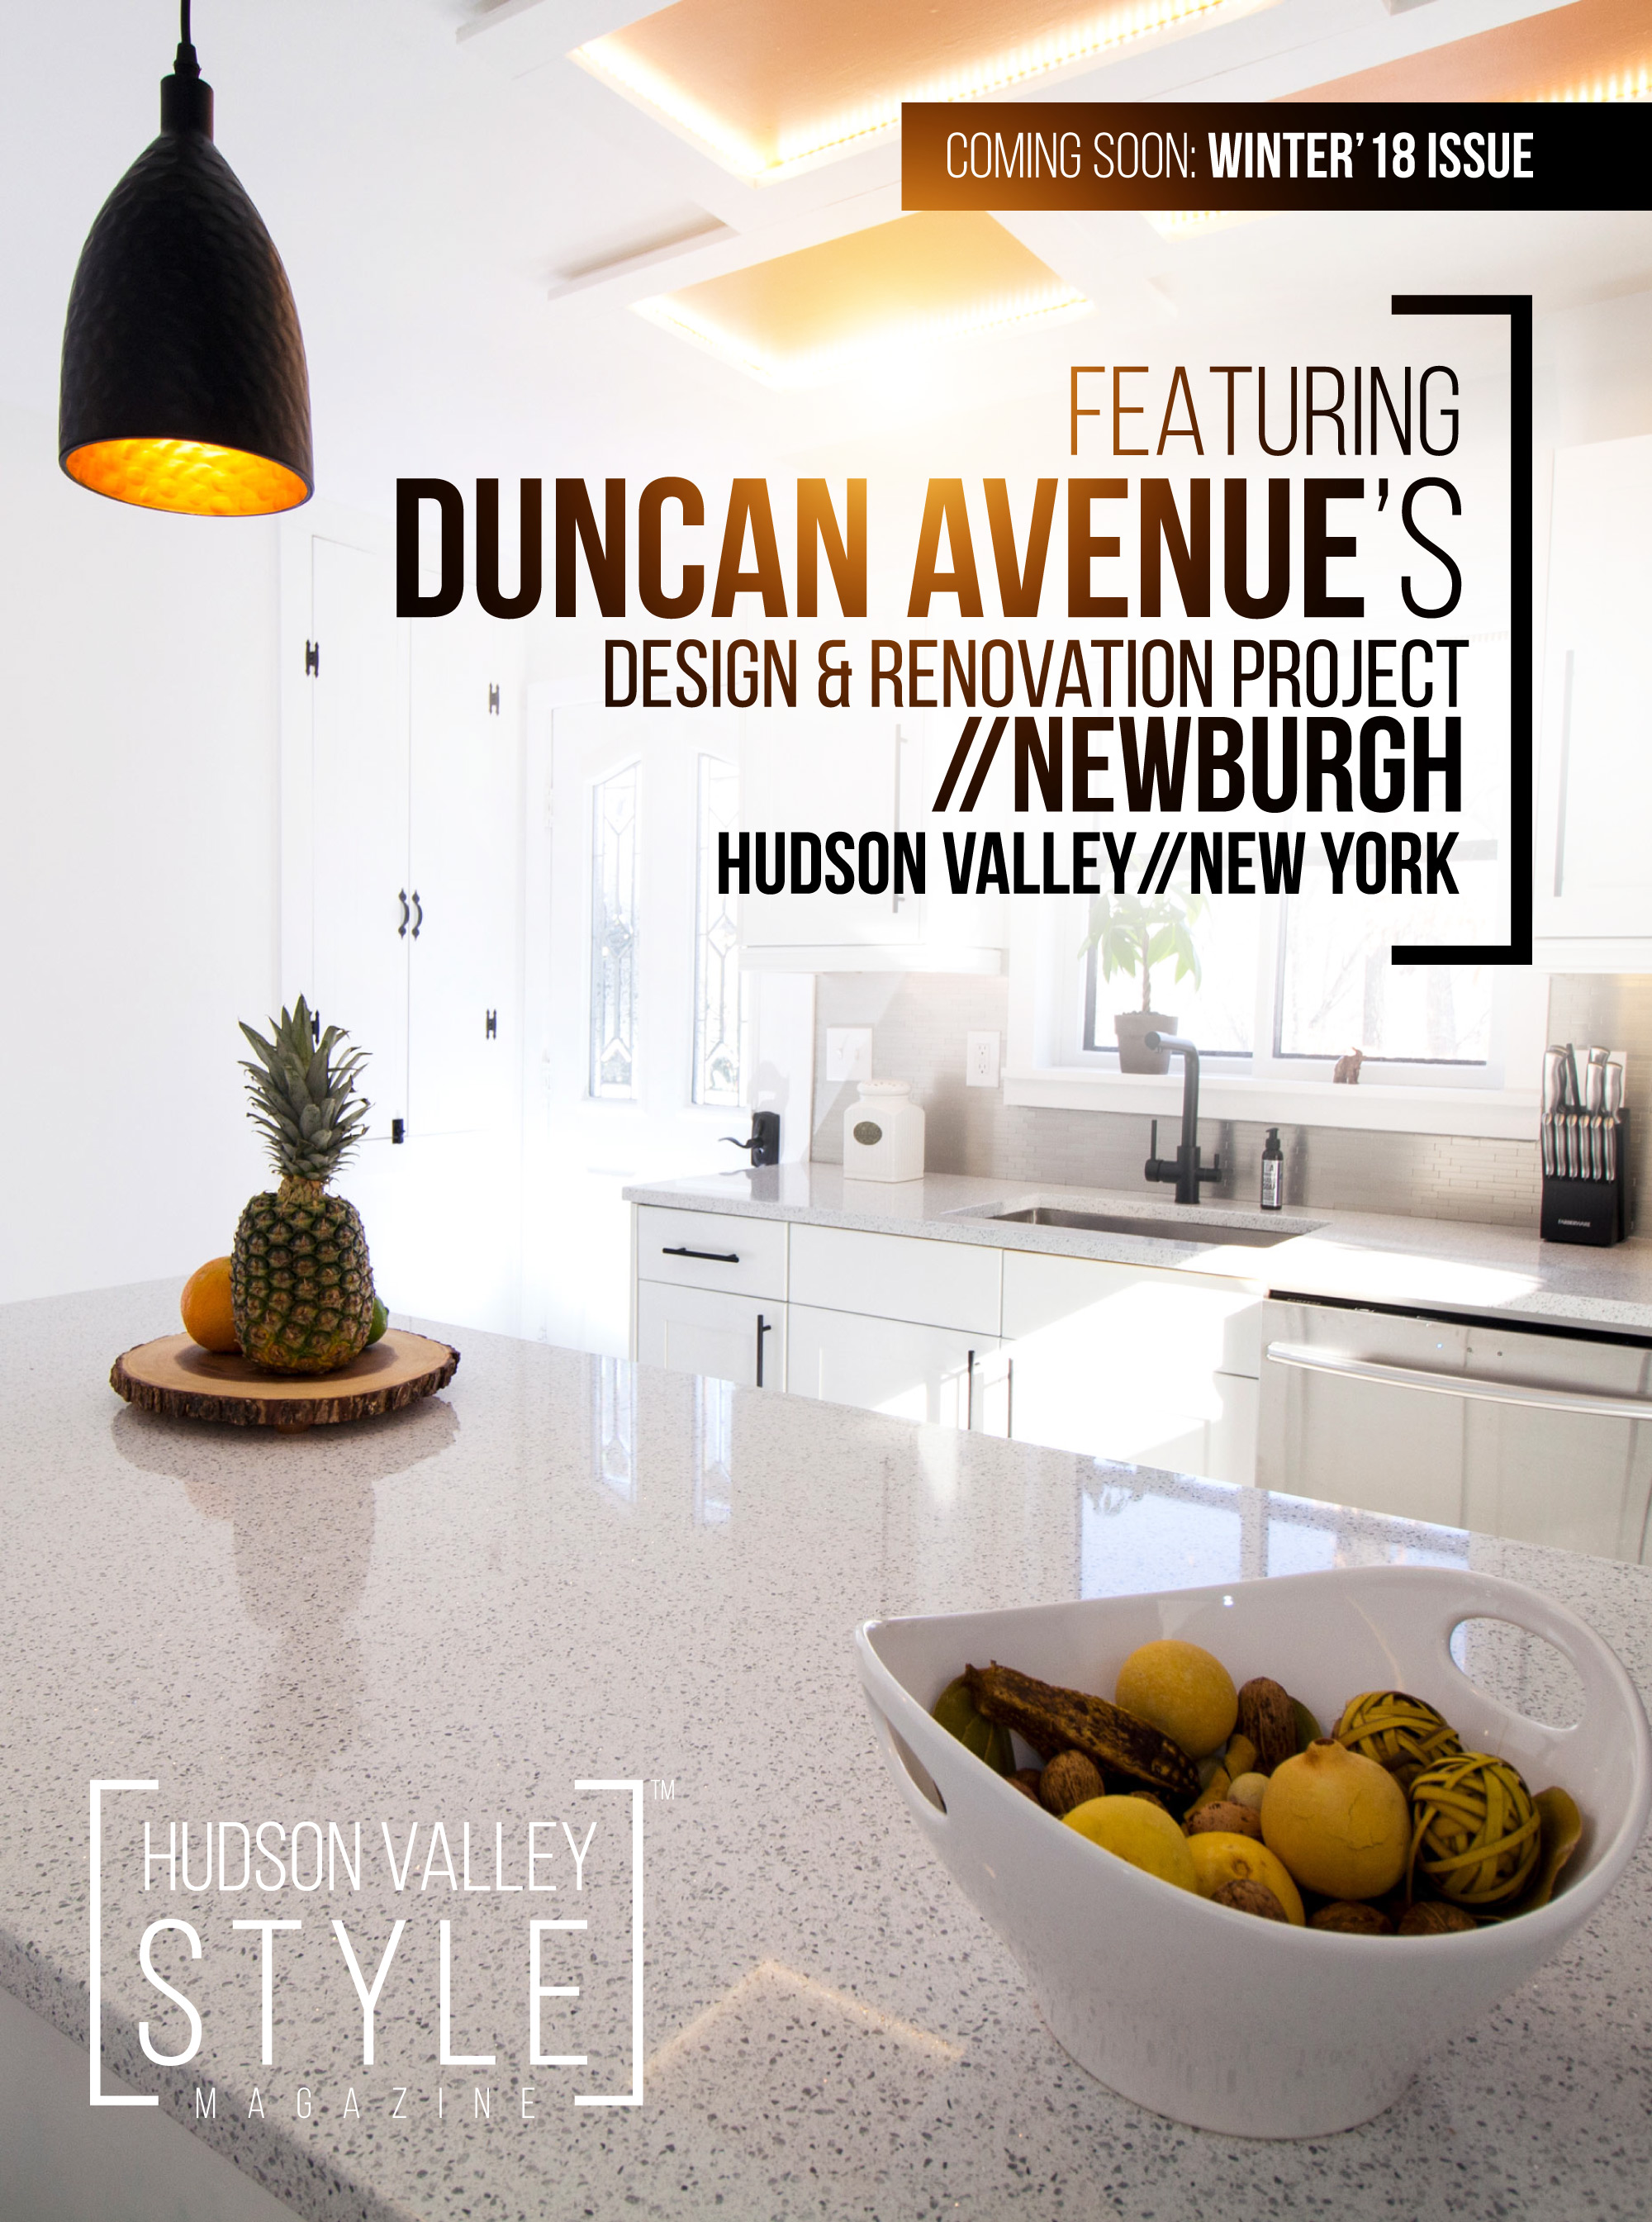 Coming In Winter 2018 Issue: Featured Project By Duncan Avenue Design  Studio   9W Property